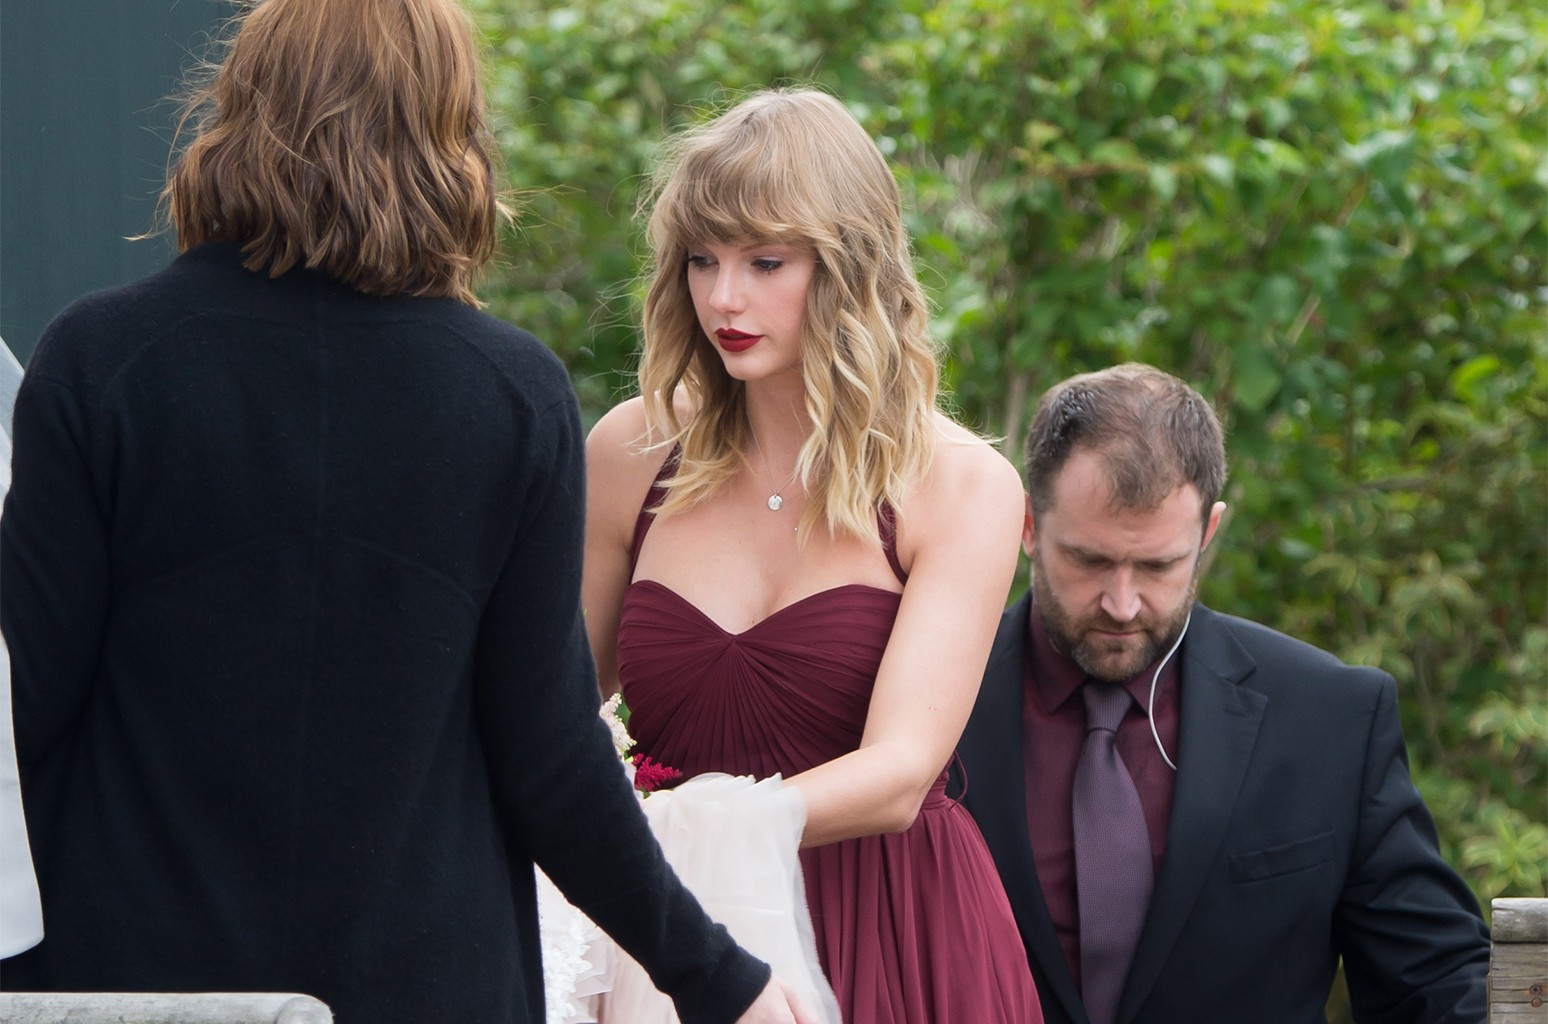 Taylor Swift is seen carrying the back of her best fried Abigail's wedding dress as they arrive at a church in Martha's Vineyard.